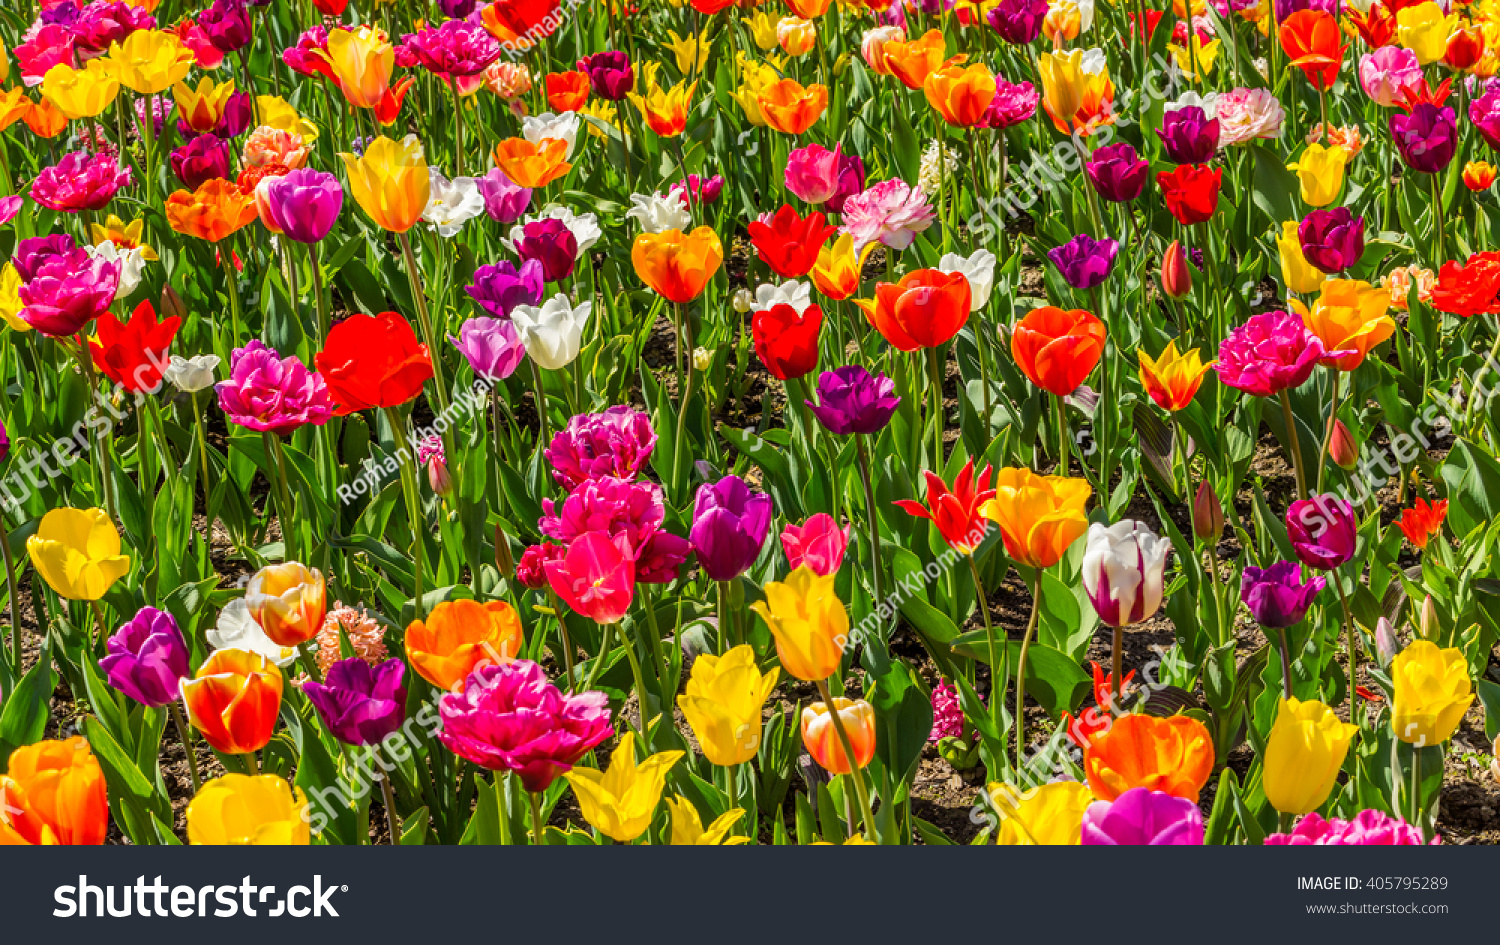 Beautiful tulips spring bright colors natural stock photo edit now beautiful tulips in the spring bright colors of natural flowers izmirmasajfo